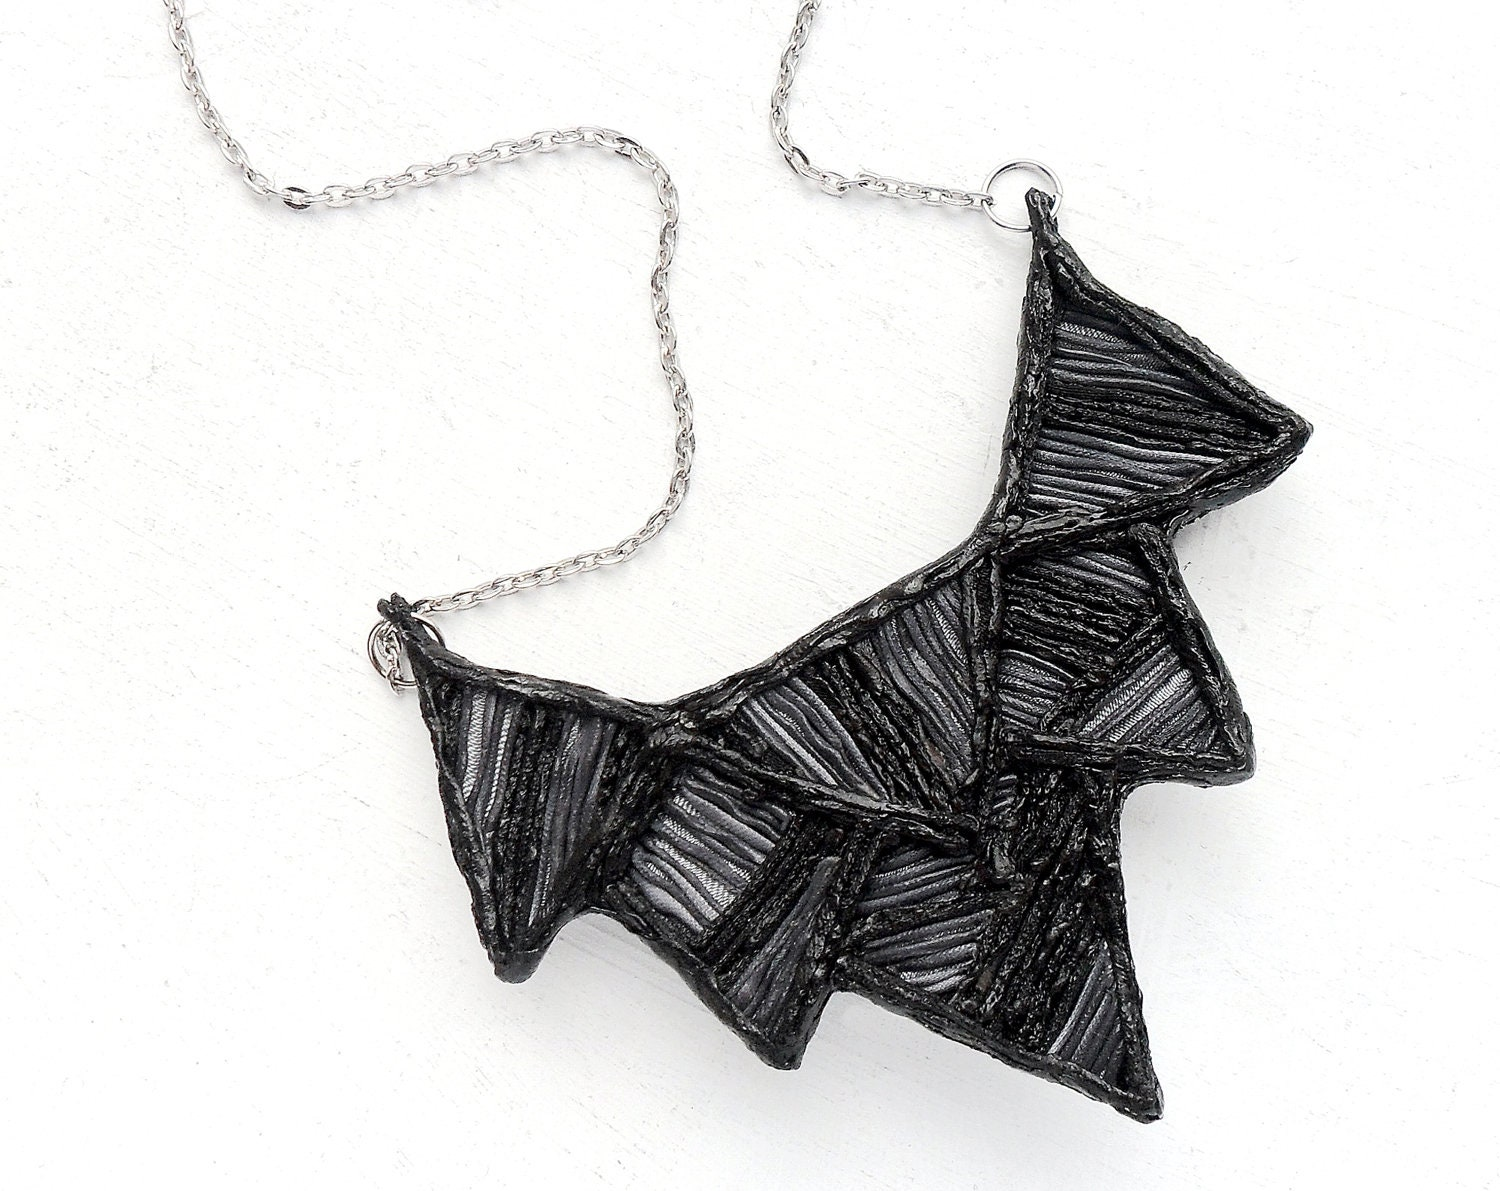 Gray and black triangle necklace - silver and black fabric necklace, statement necklace, geometric necklace, women jewelry, chevron necklace - OsikOsik